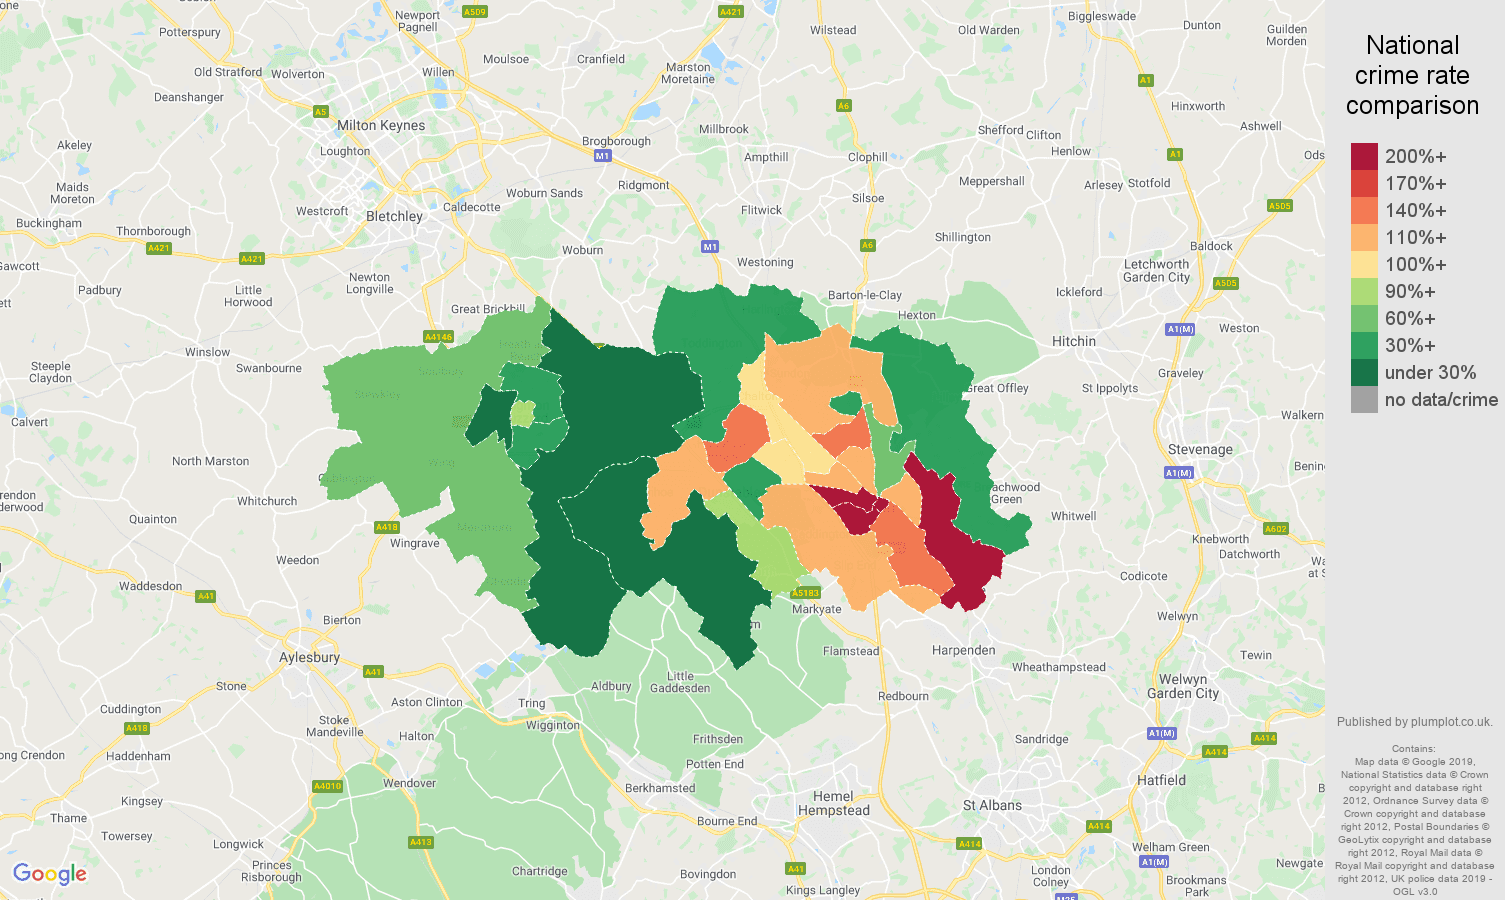 Luton possession of weapons crime rate comparison map